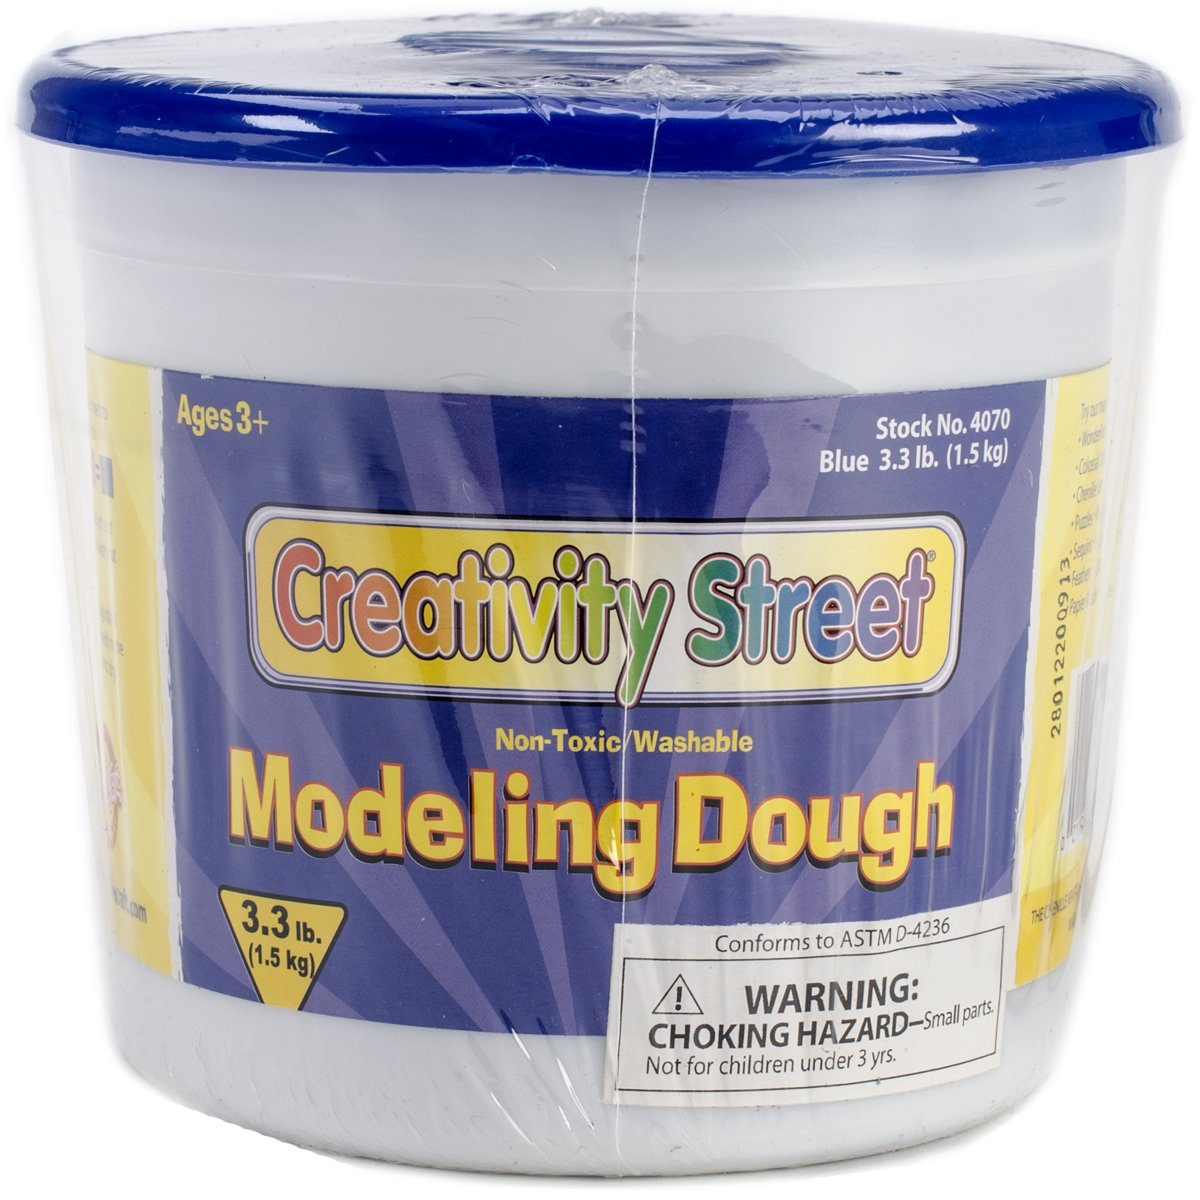 Chenille Kraft Blue Modeling Dough, 3-Pound. The Chenille Kraft Company 4070